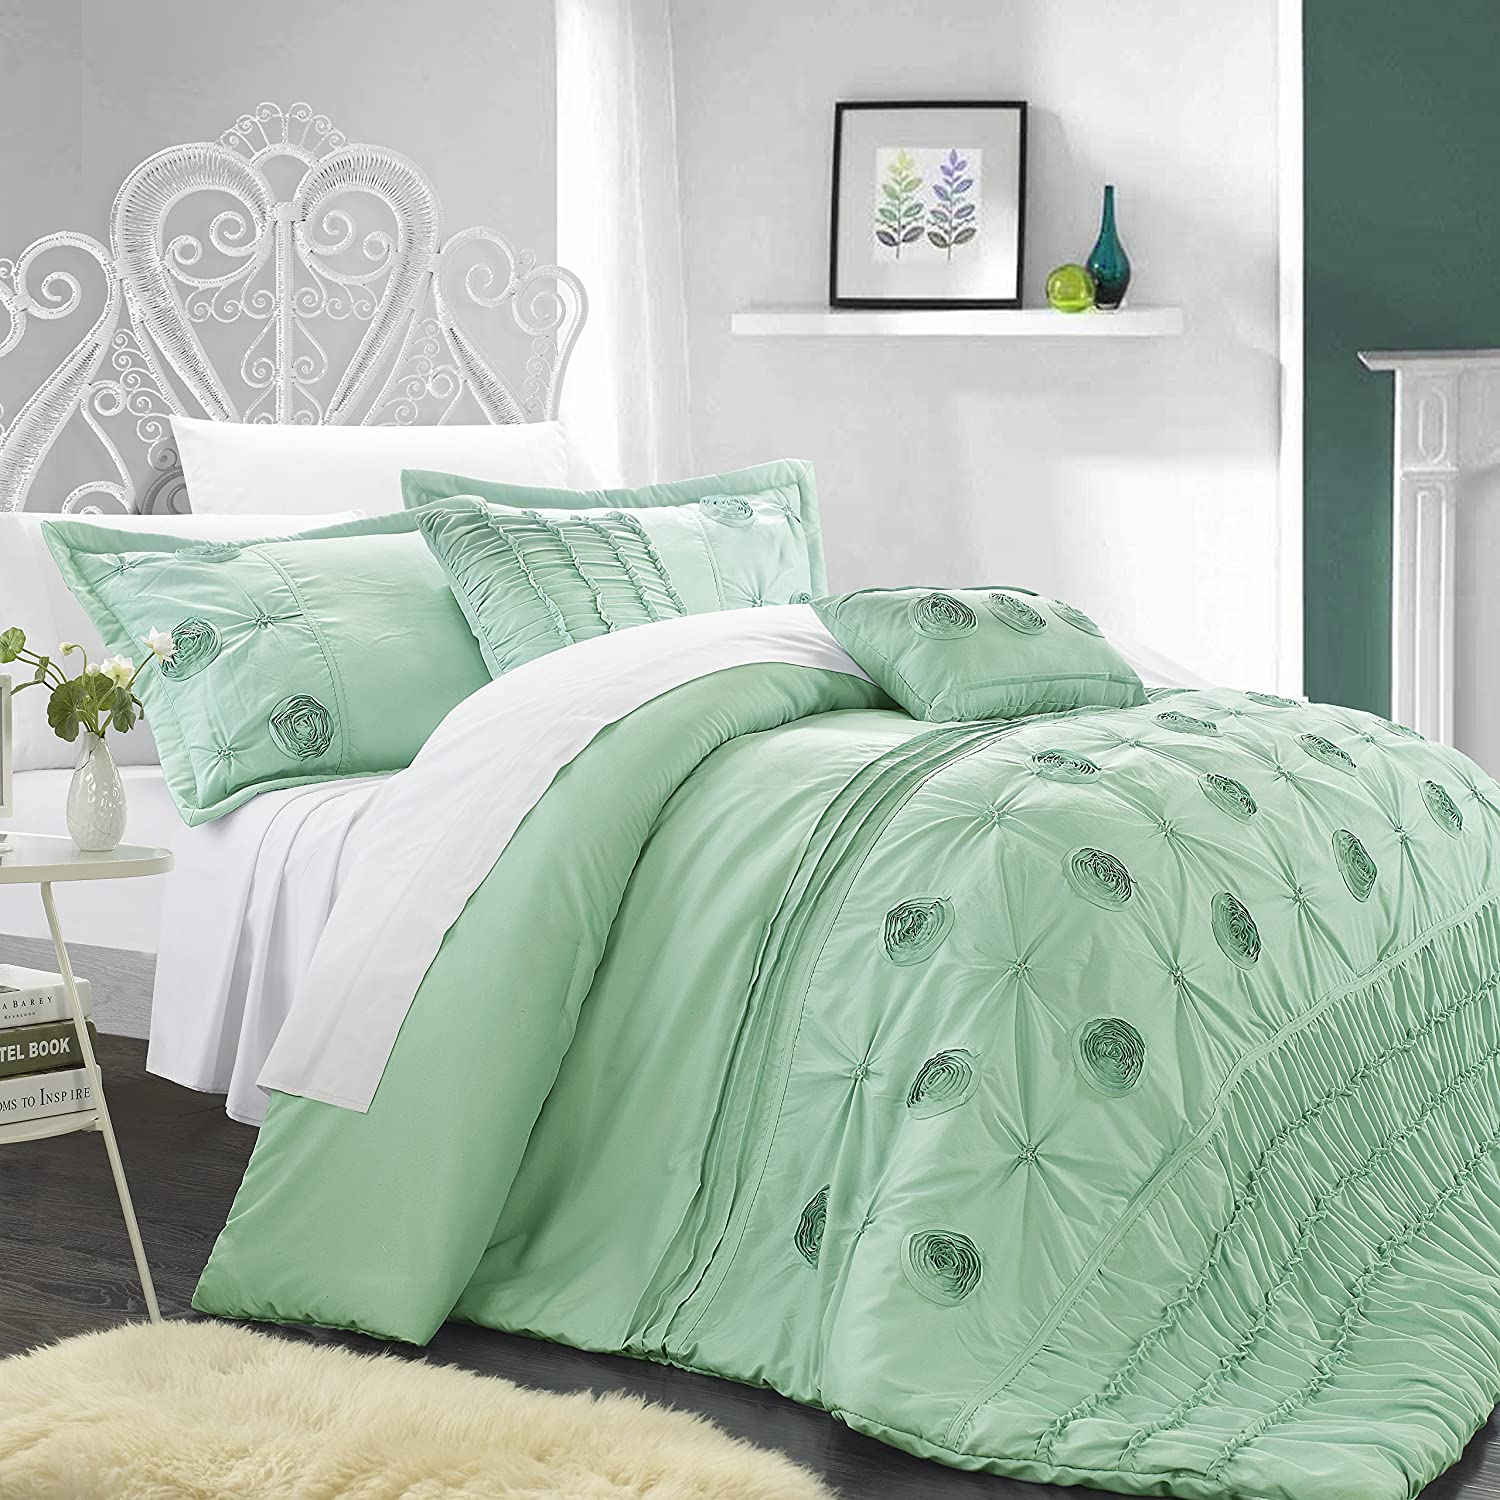 Chic Home 5-Piece Florentina Floral Pleated Comforter Set, Aqua, Queen